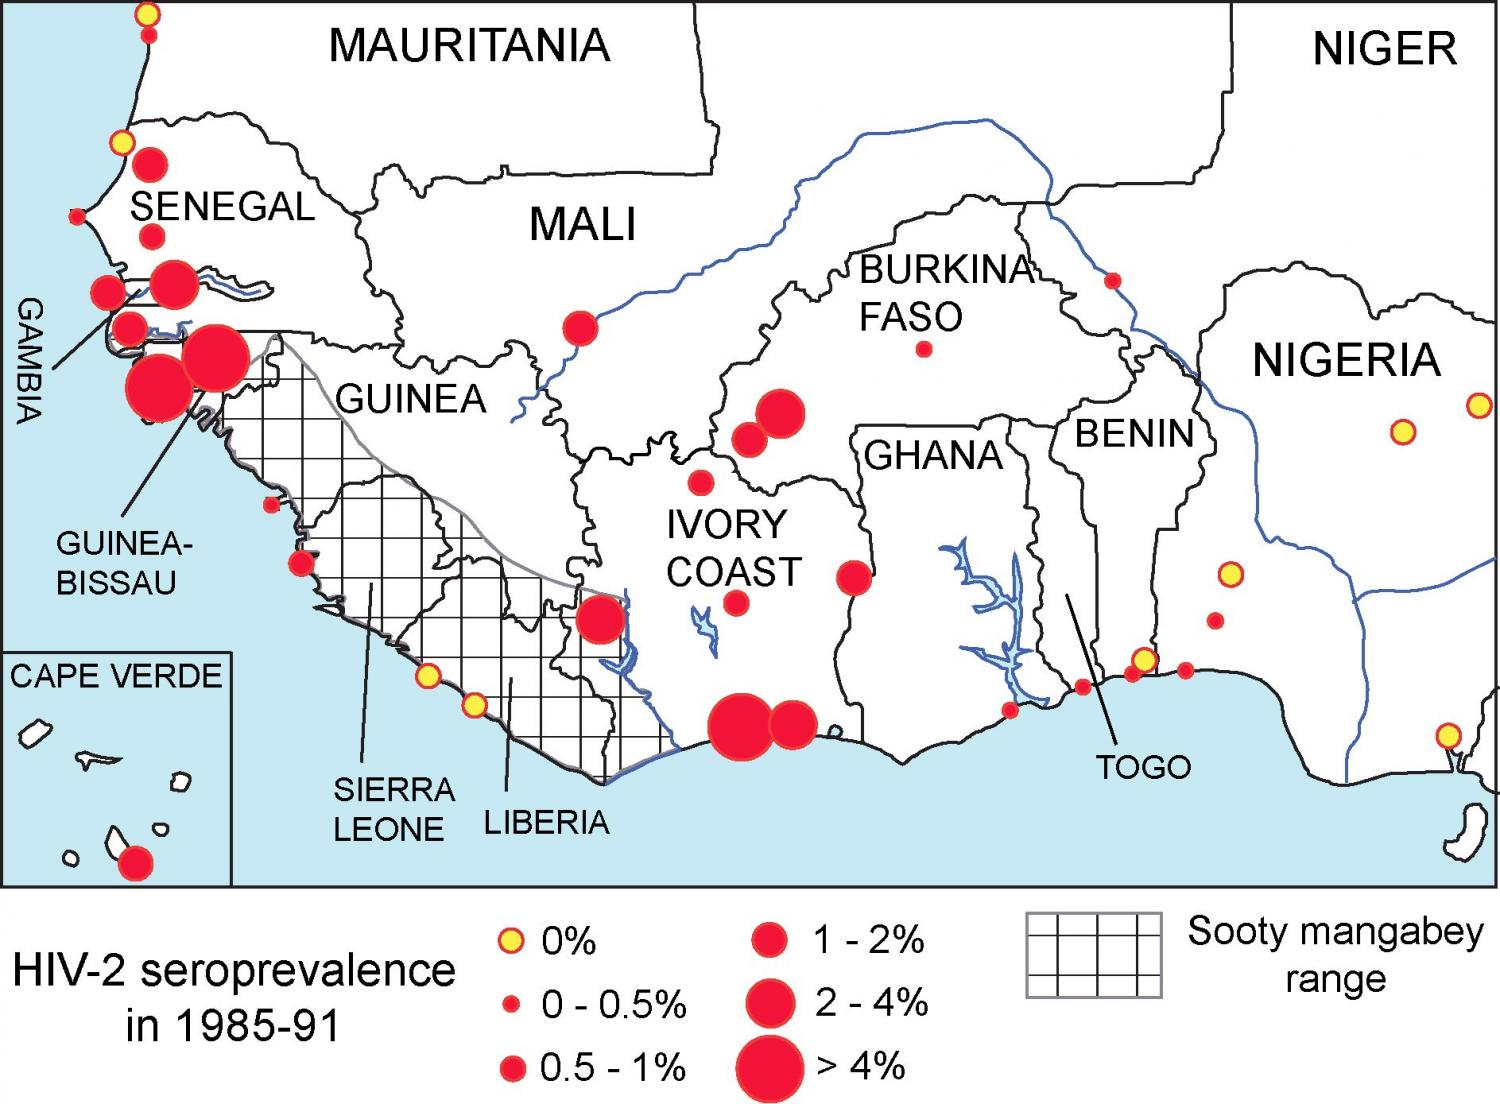 African hiv 2 prevalence associated with lower historical male hiv 2 seroprevalence in adults without specific risk factors in west africa 1985 91 credit sousa et al 2016 ccuart Images